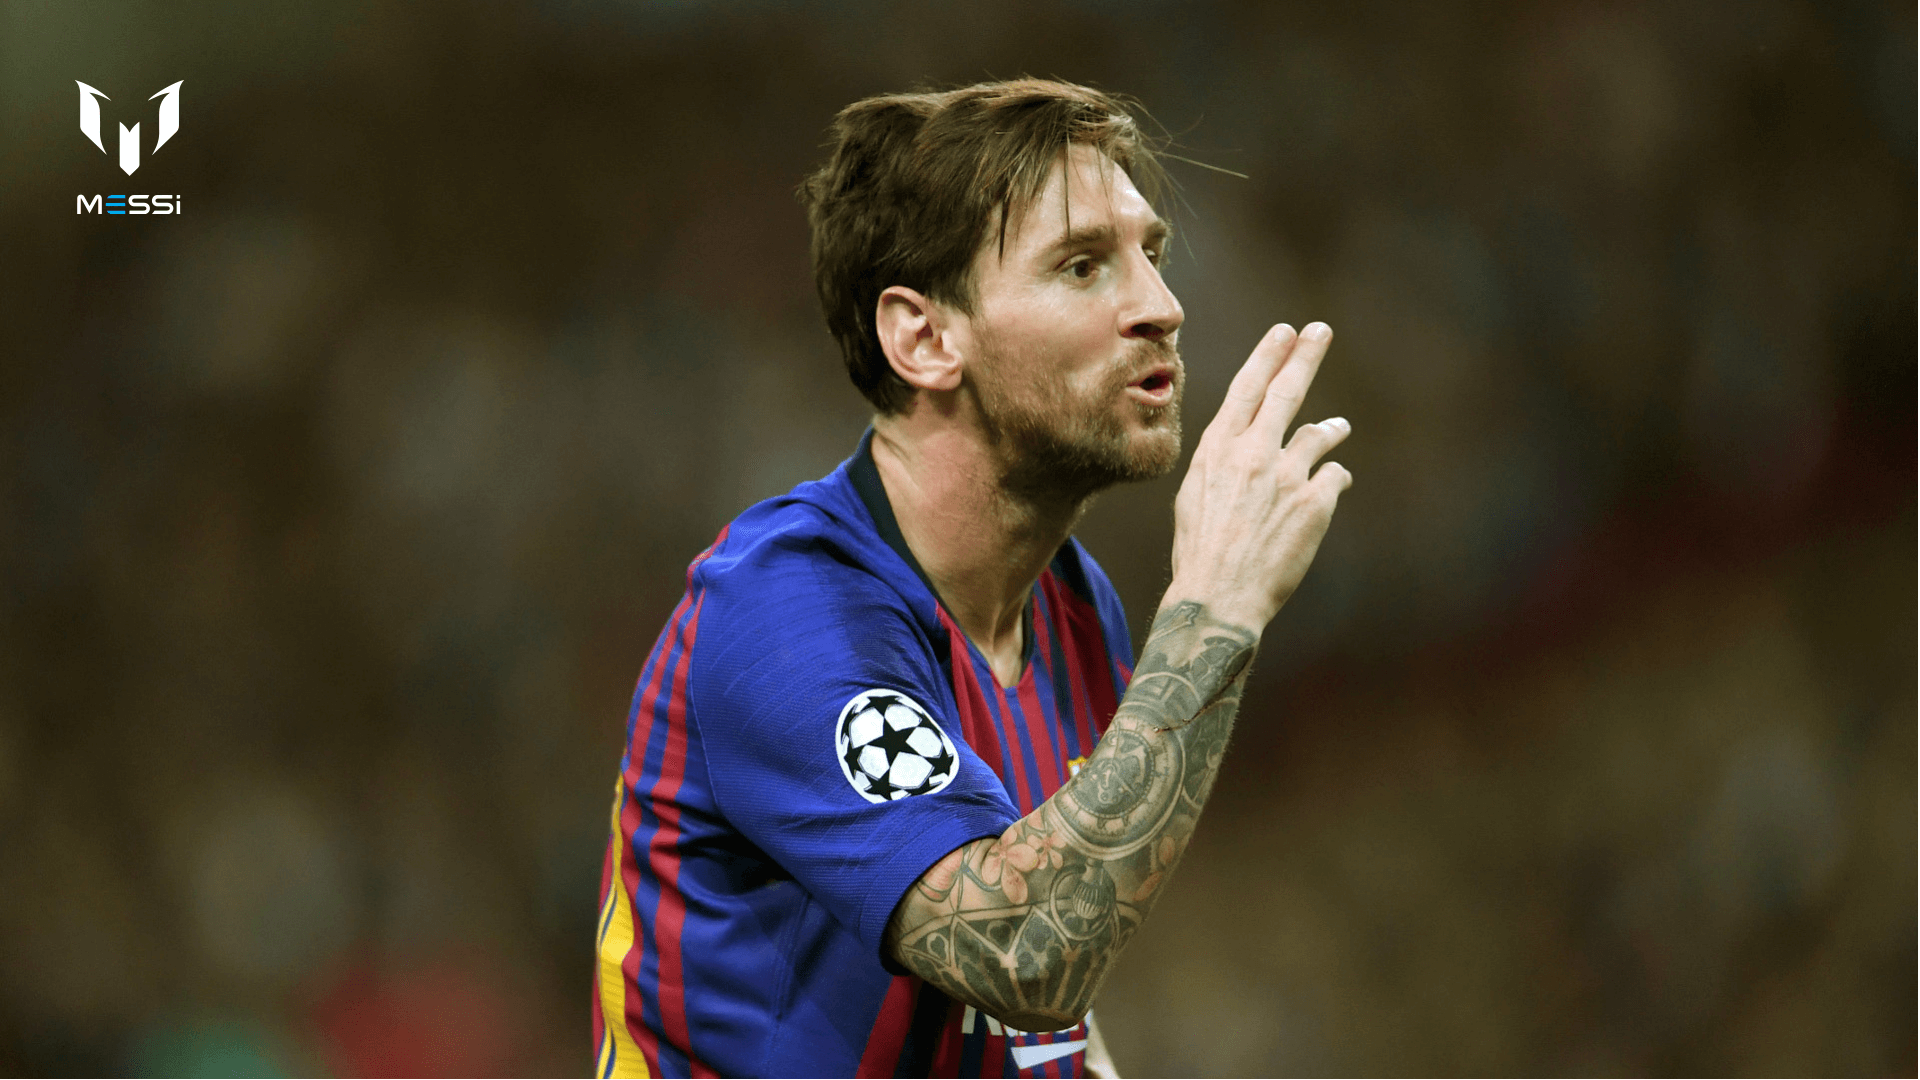 TOP BEST 50 LIONEL MESSI WALLPAPER PHOTOS HD 2019 - eDigital ...